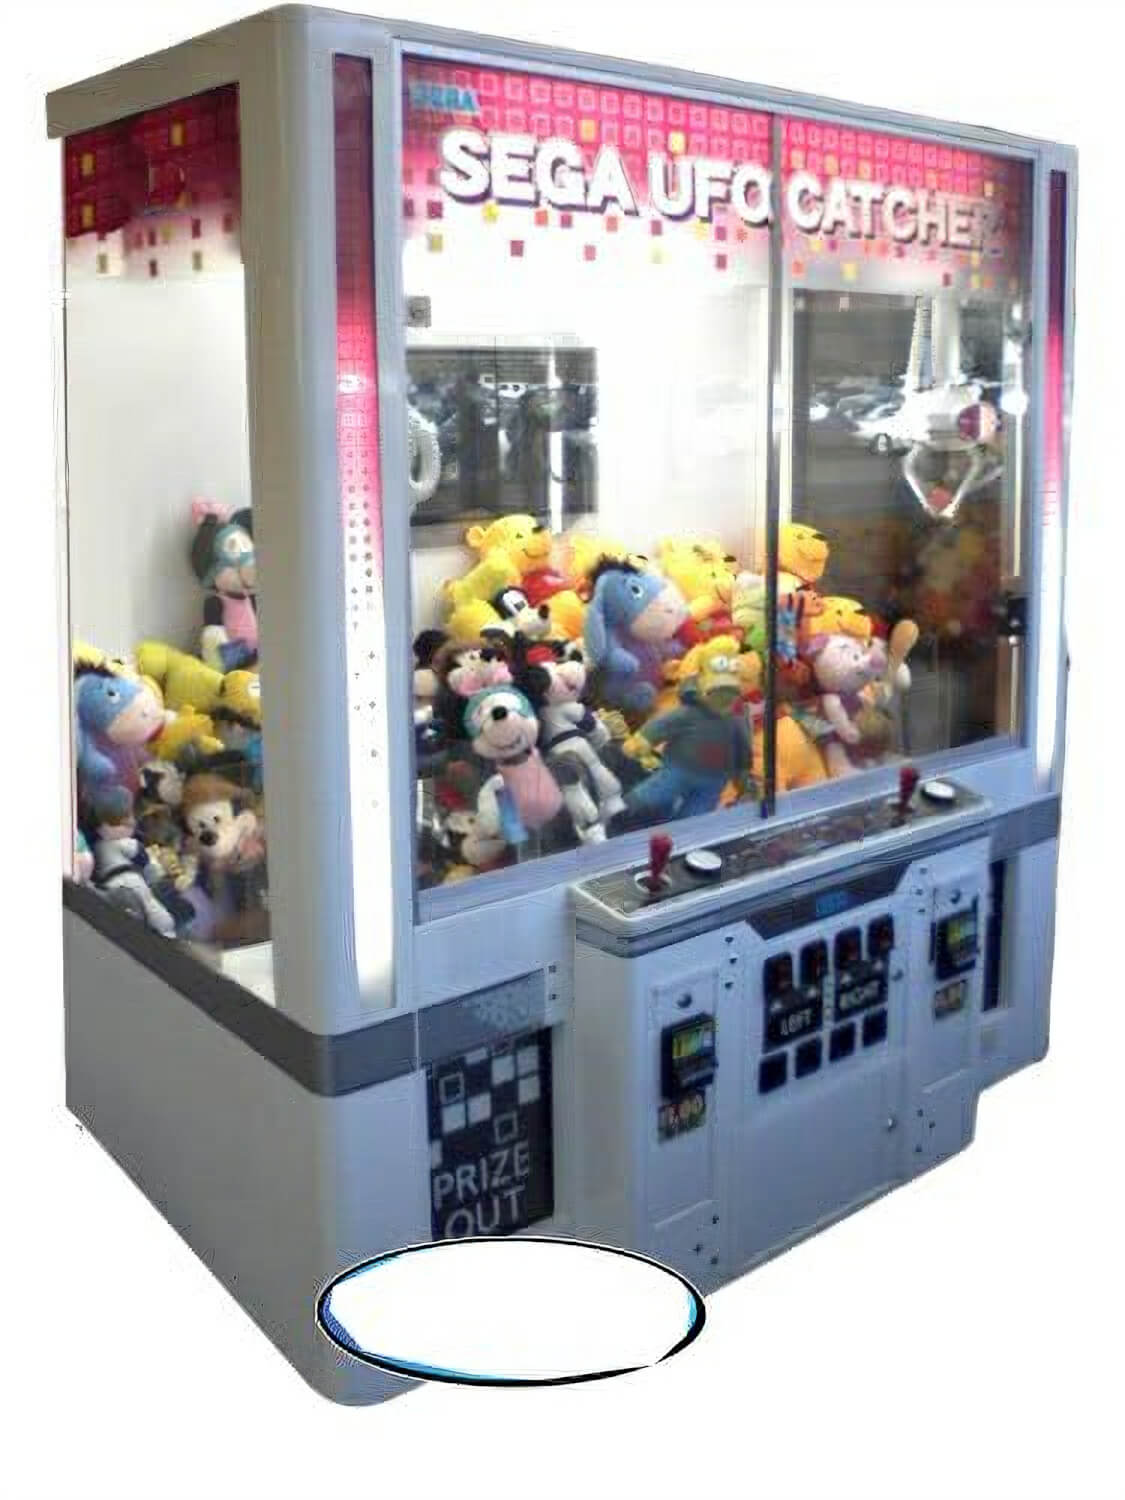 Sega Ufo Catcher Hello Kitty Crane Machine Liberty Games